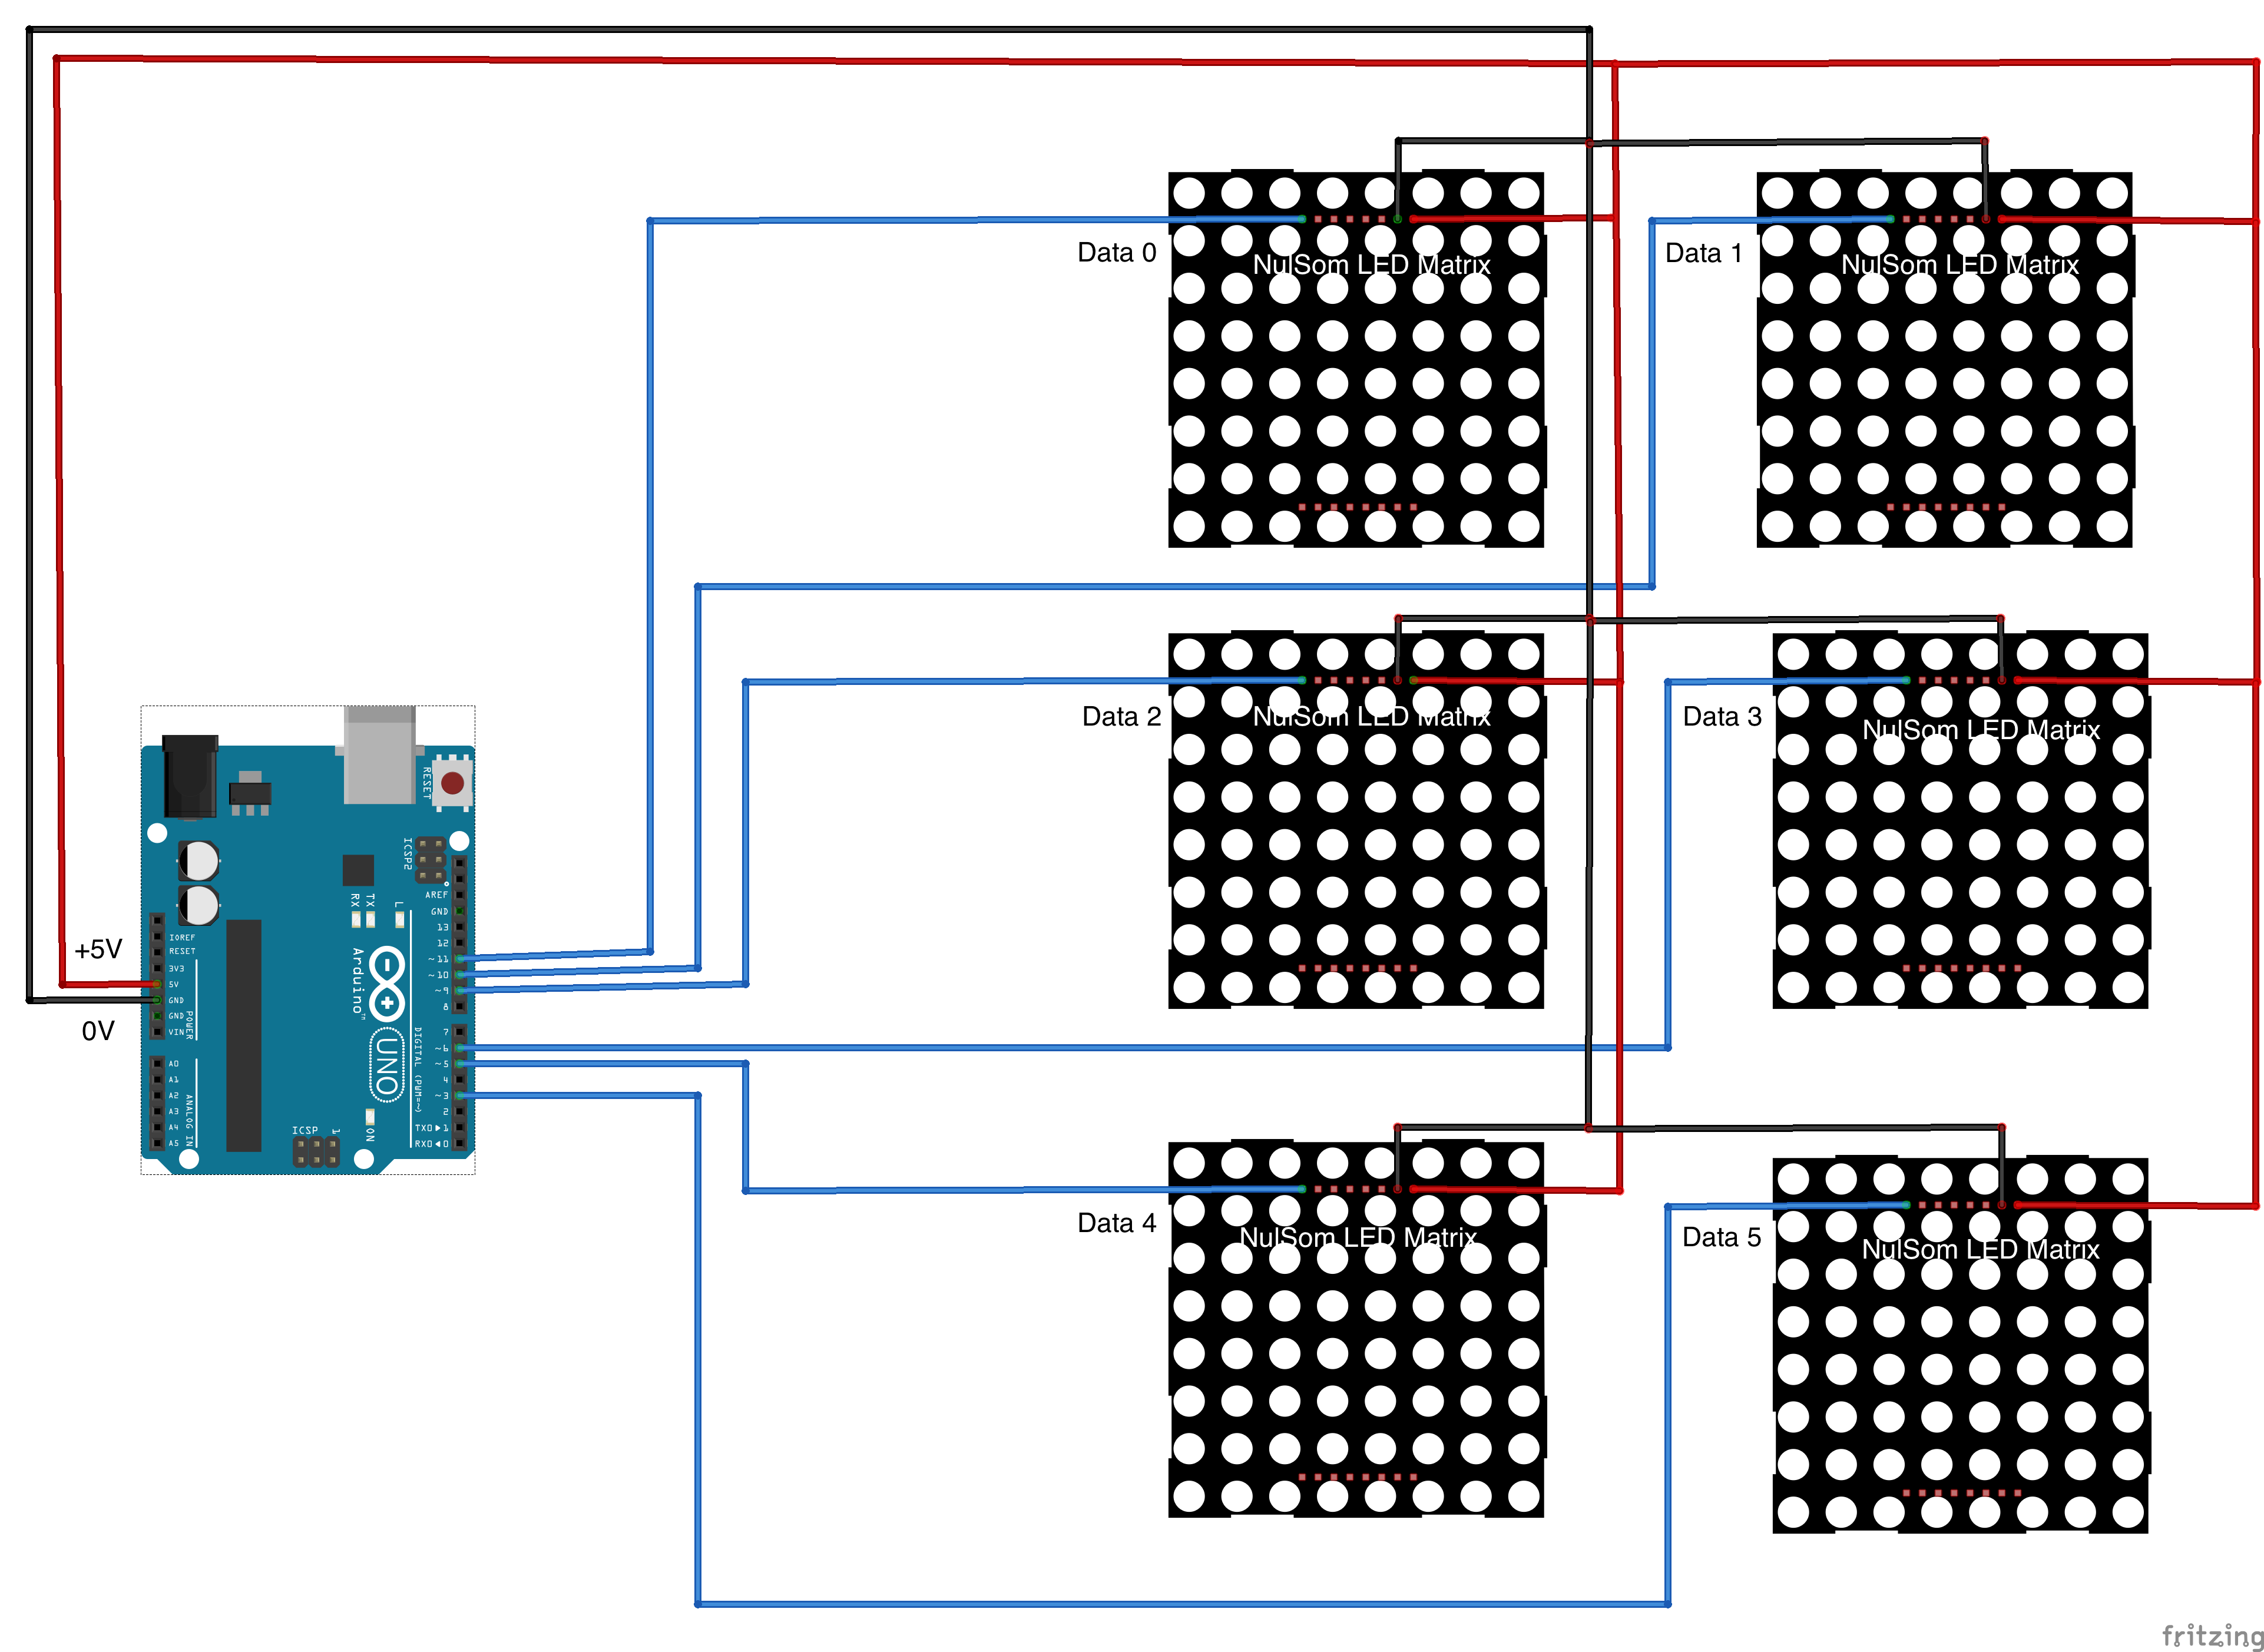 Cubelite Led Project Circuit Diagram We Decided To Use Nulsom Matrices For The Faces Of Our Cube Using These Pre Made Not Only Allowed Us Focus On Aspects